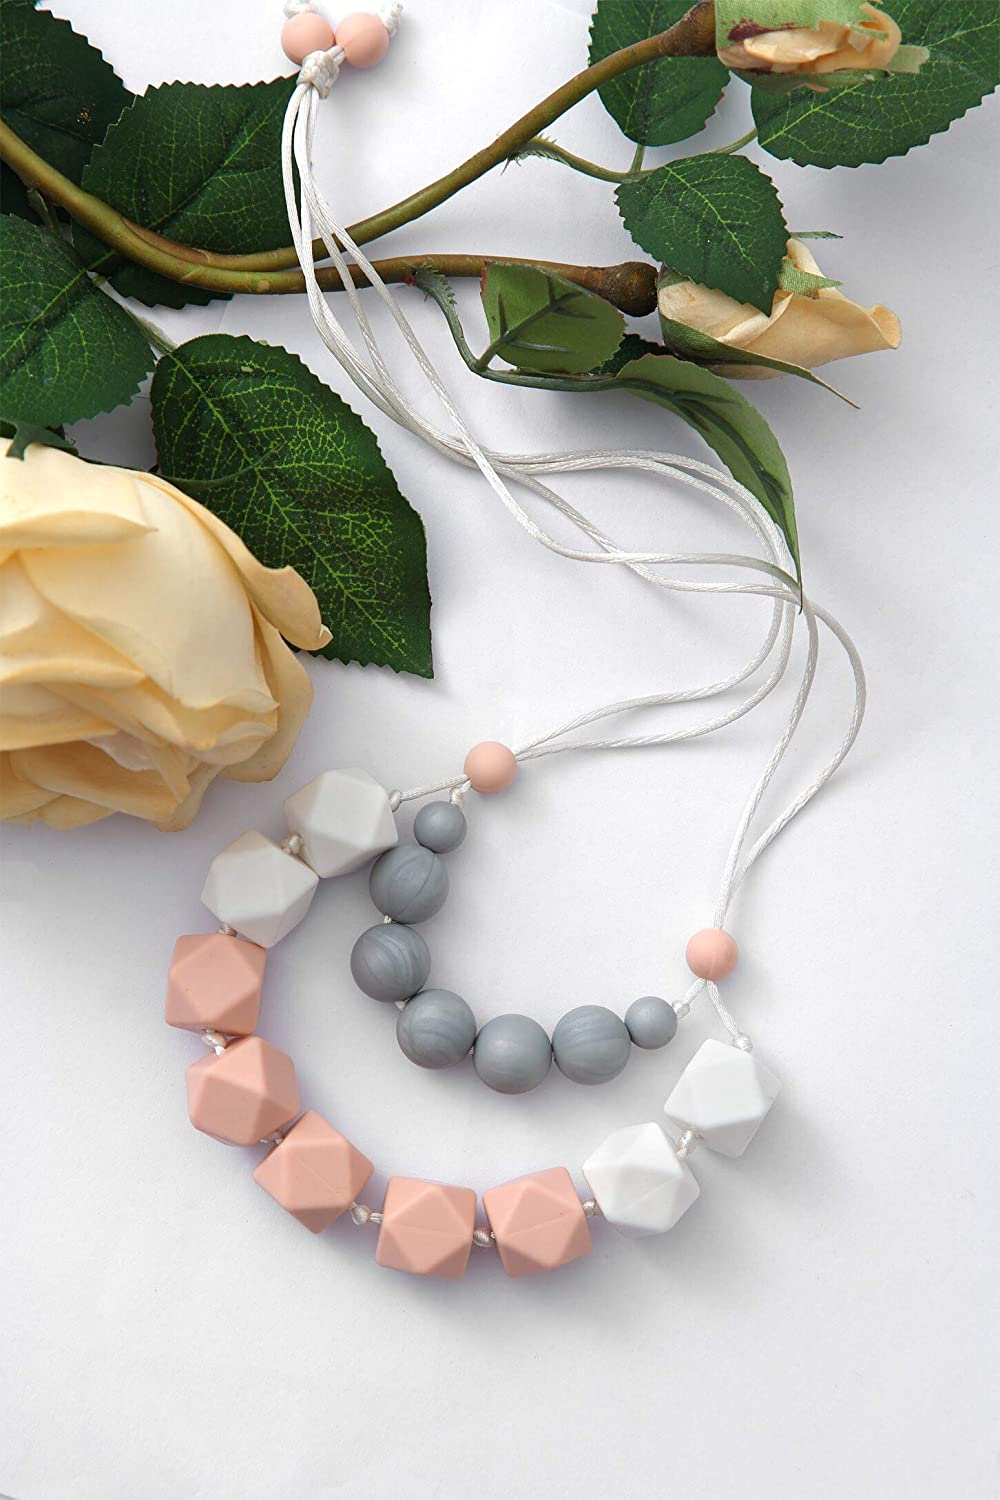 Instant Pacifier Shenzhen Yuan Feng Baby Silicone Products Company Limited 100/% BPA Free Silicone Beads Teething and Drooling Relief Pink, White, Gray Chewlery MINIme Long Teething Necklace